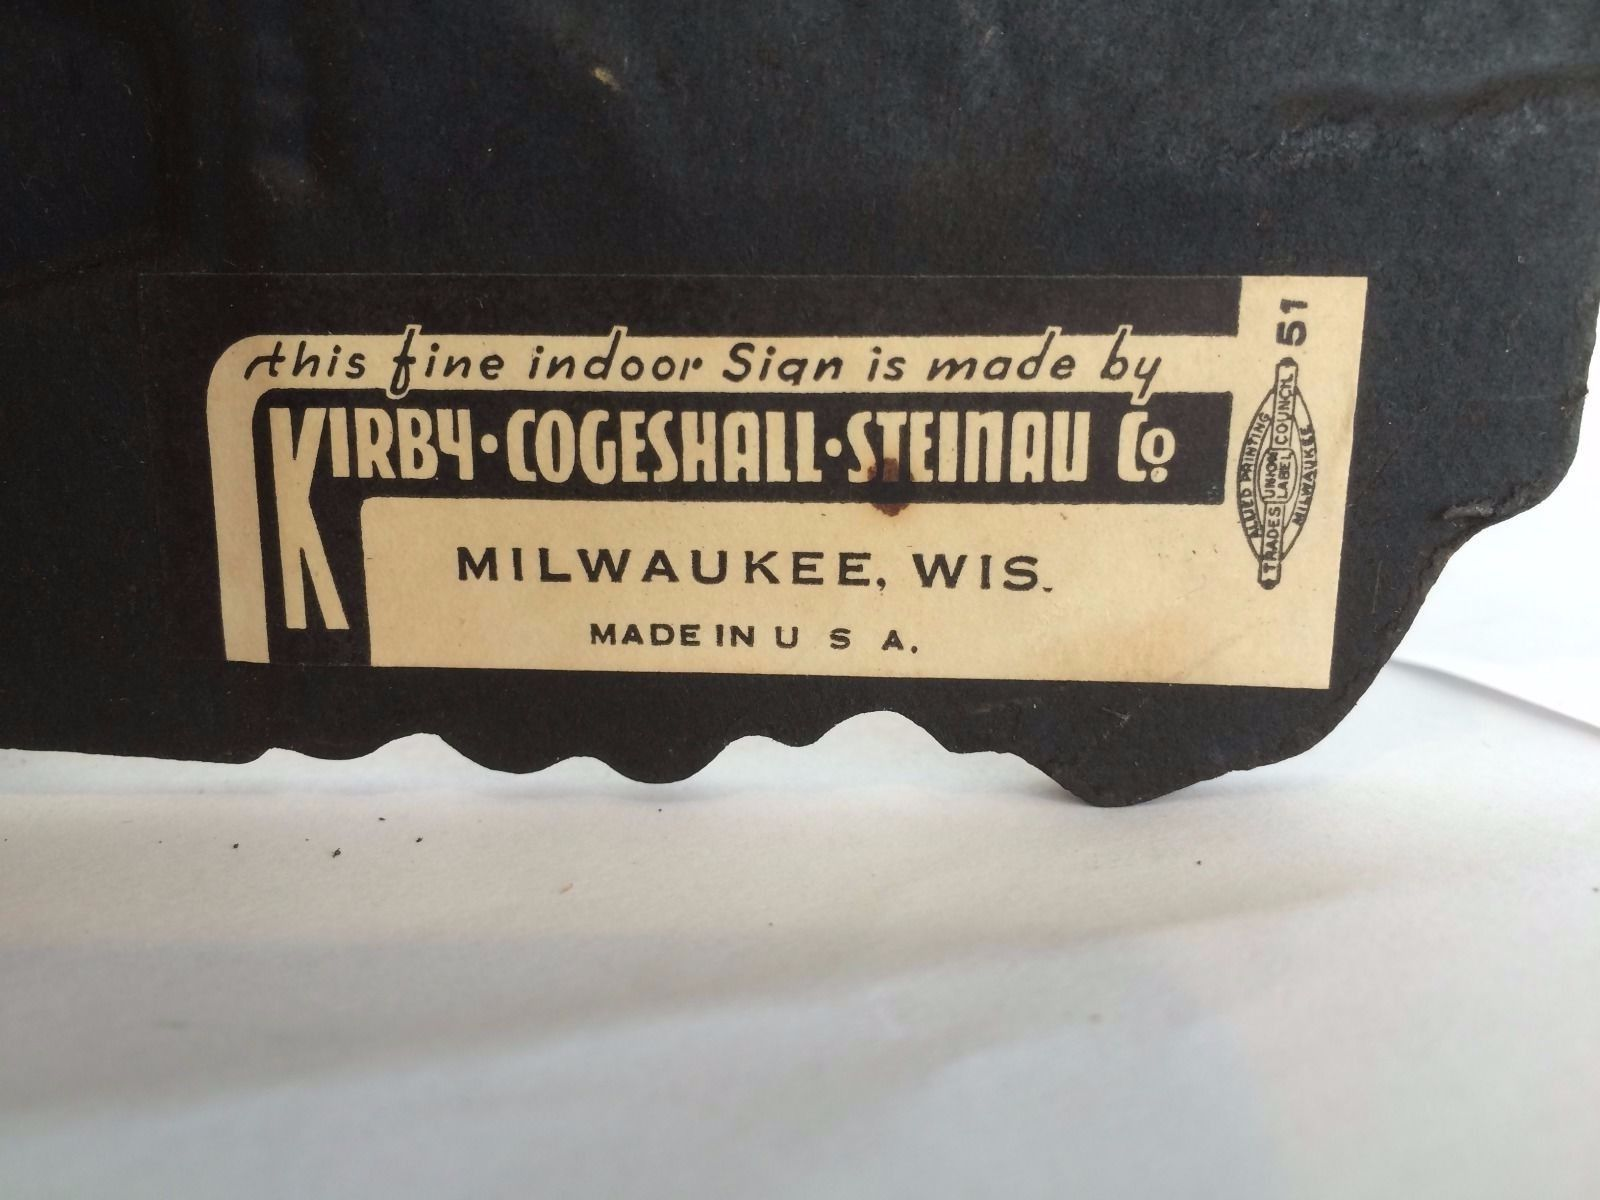 kirby-coggeshall-steinau co label